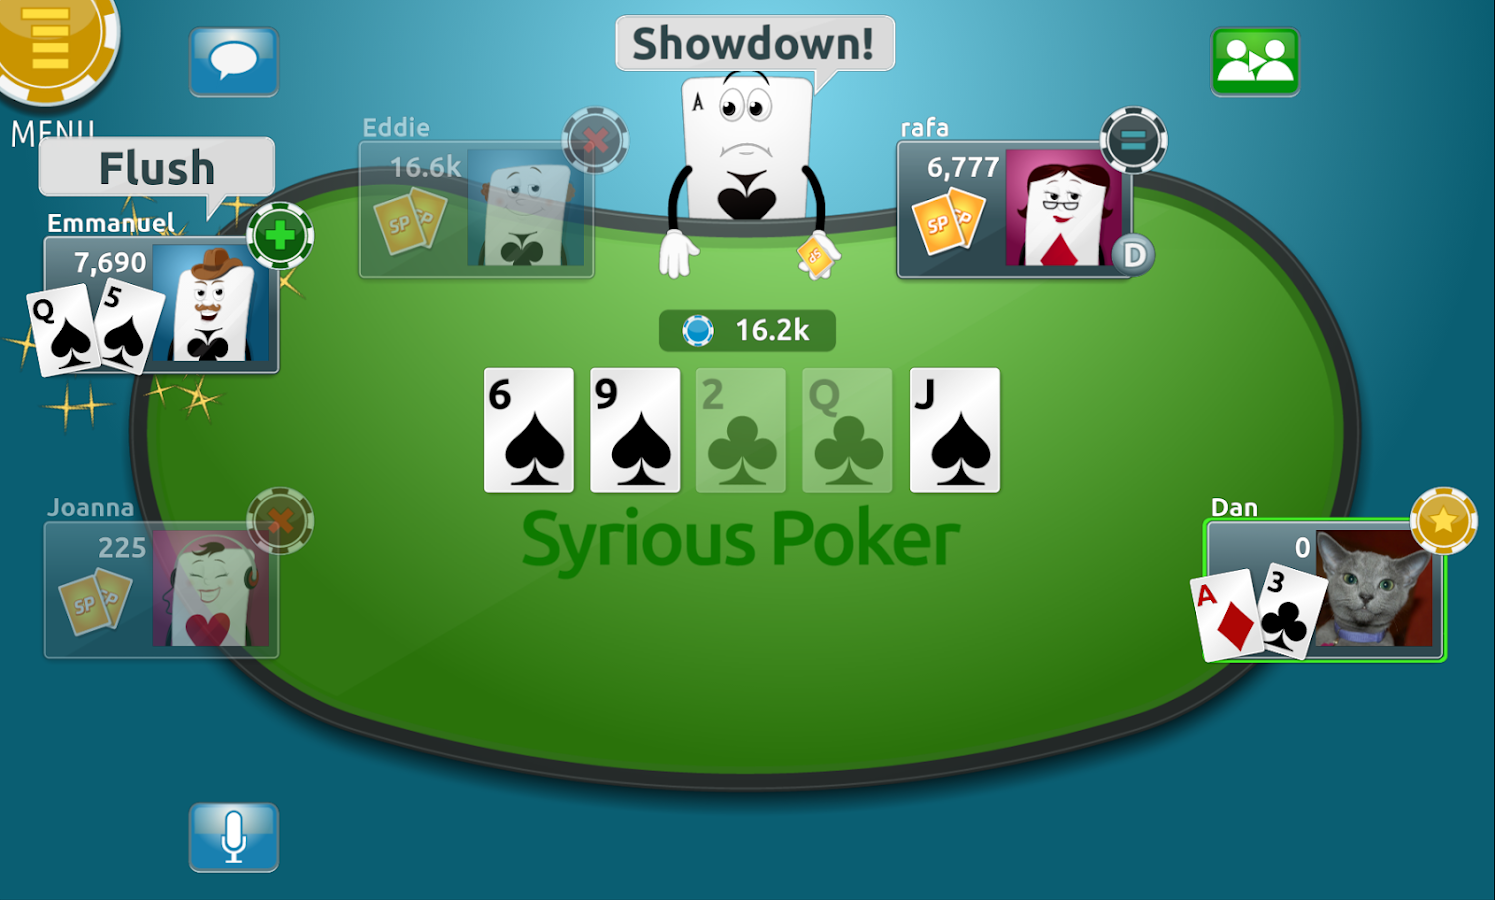 True poker live chat : Play Poker Online